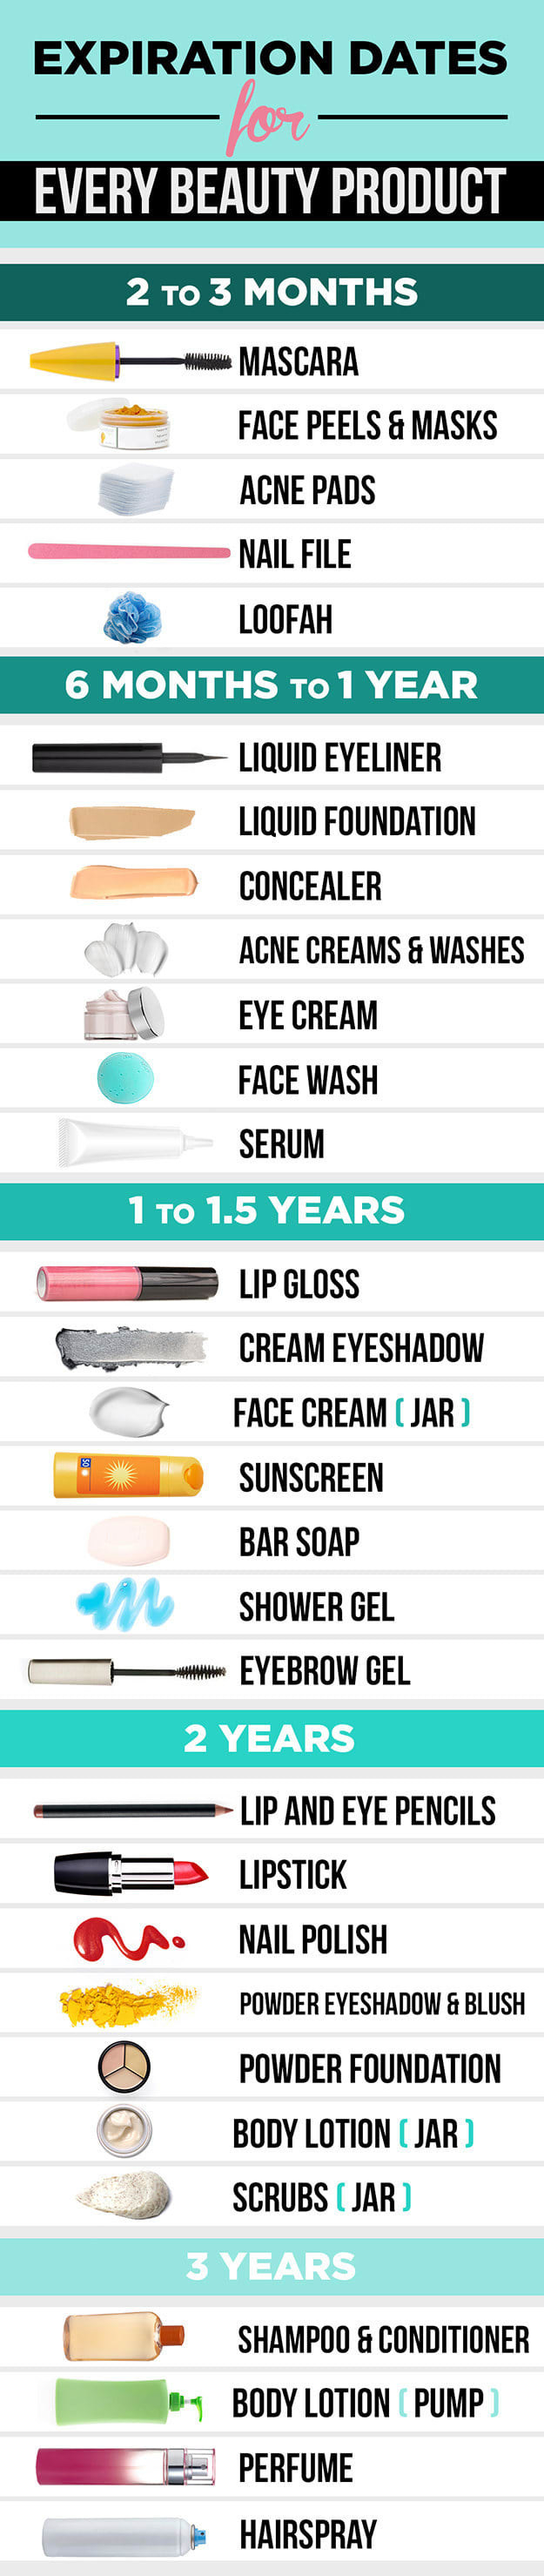 An infographic showing how long it takes dozens of different beauty products to expire